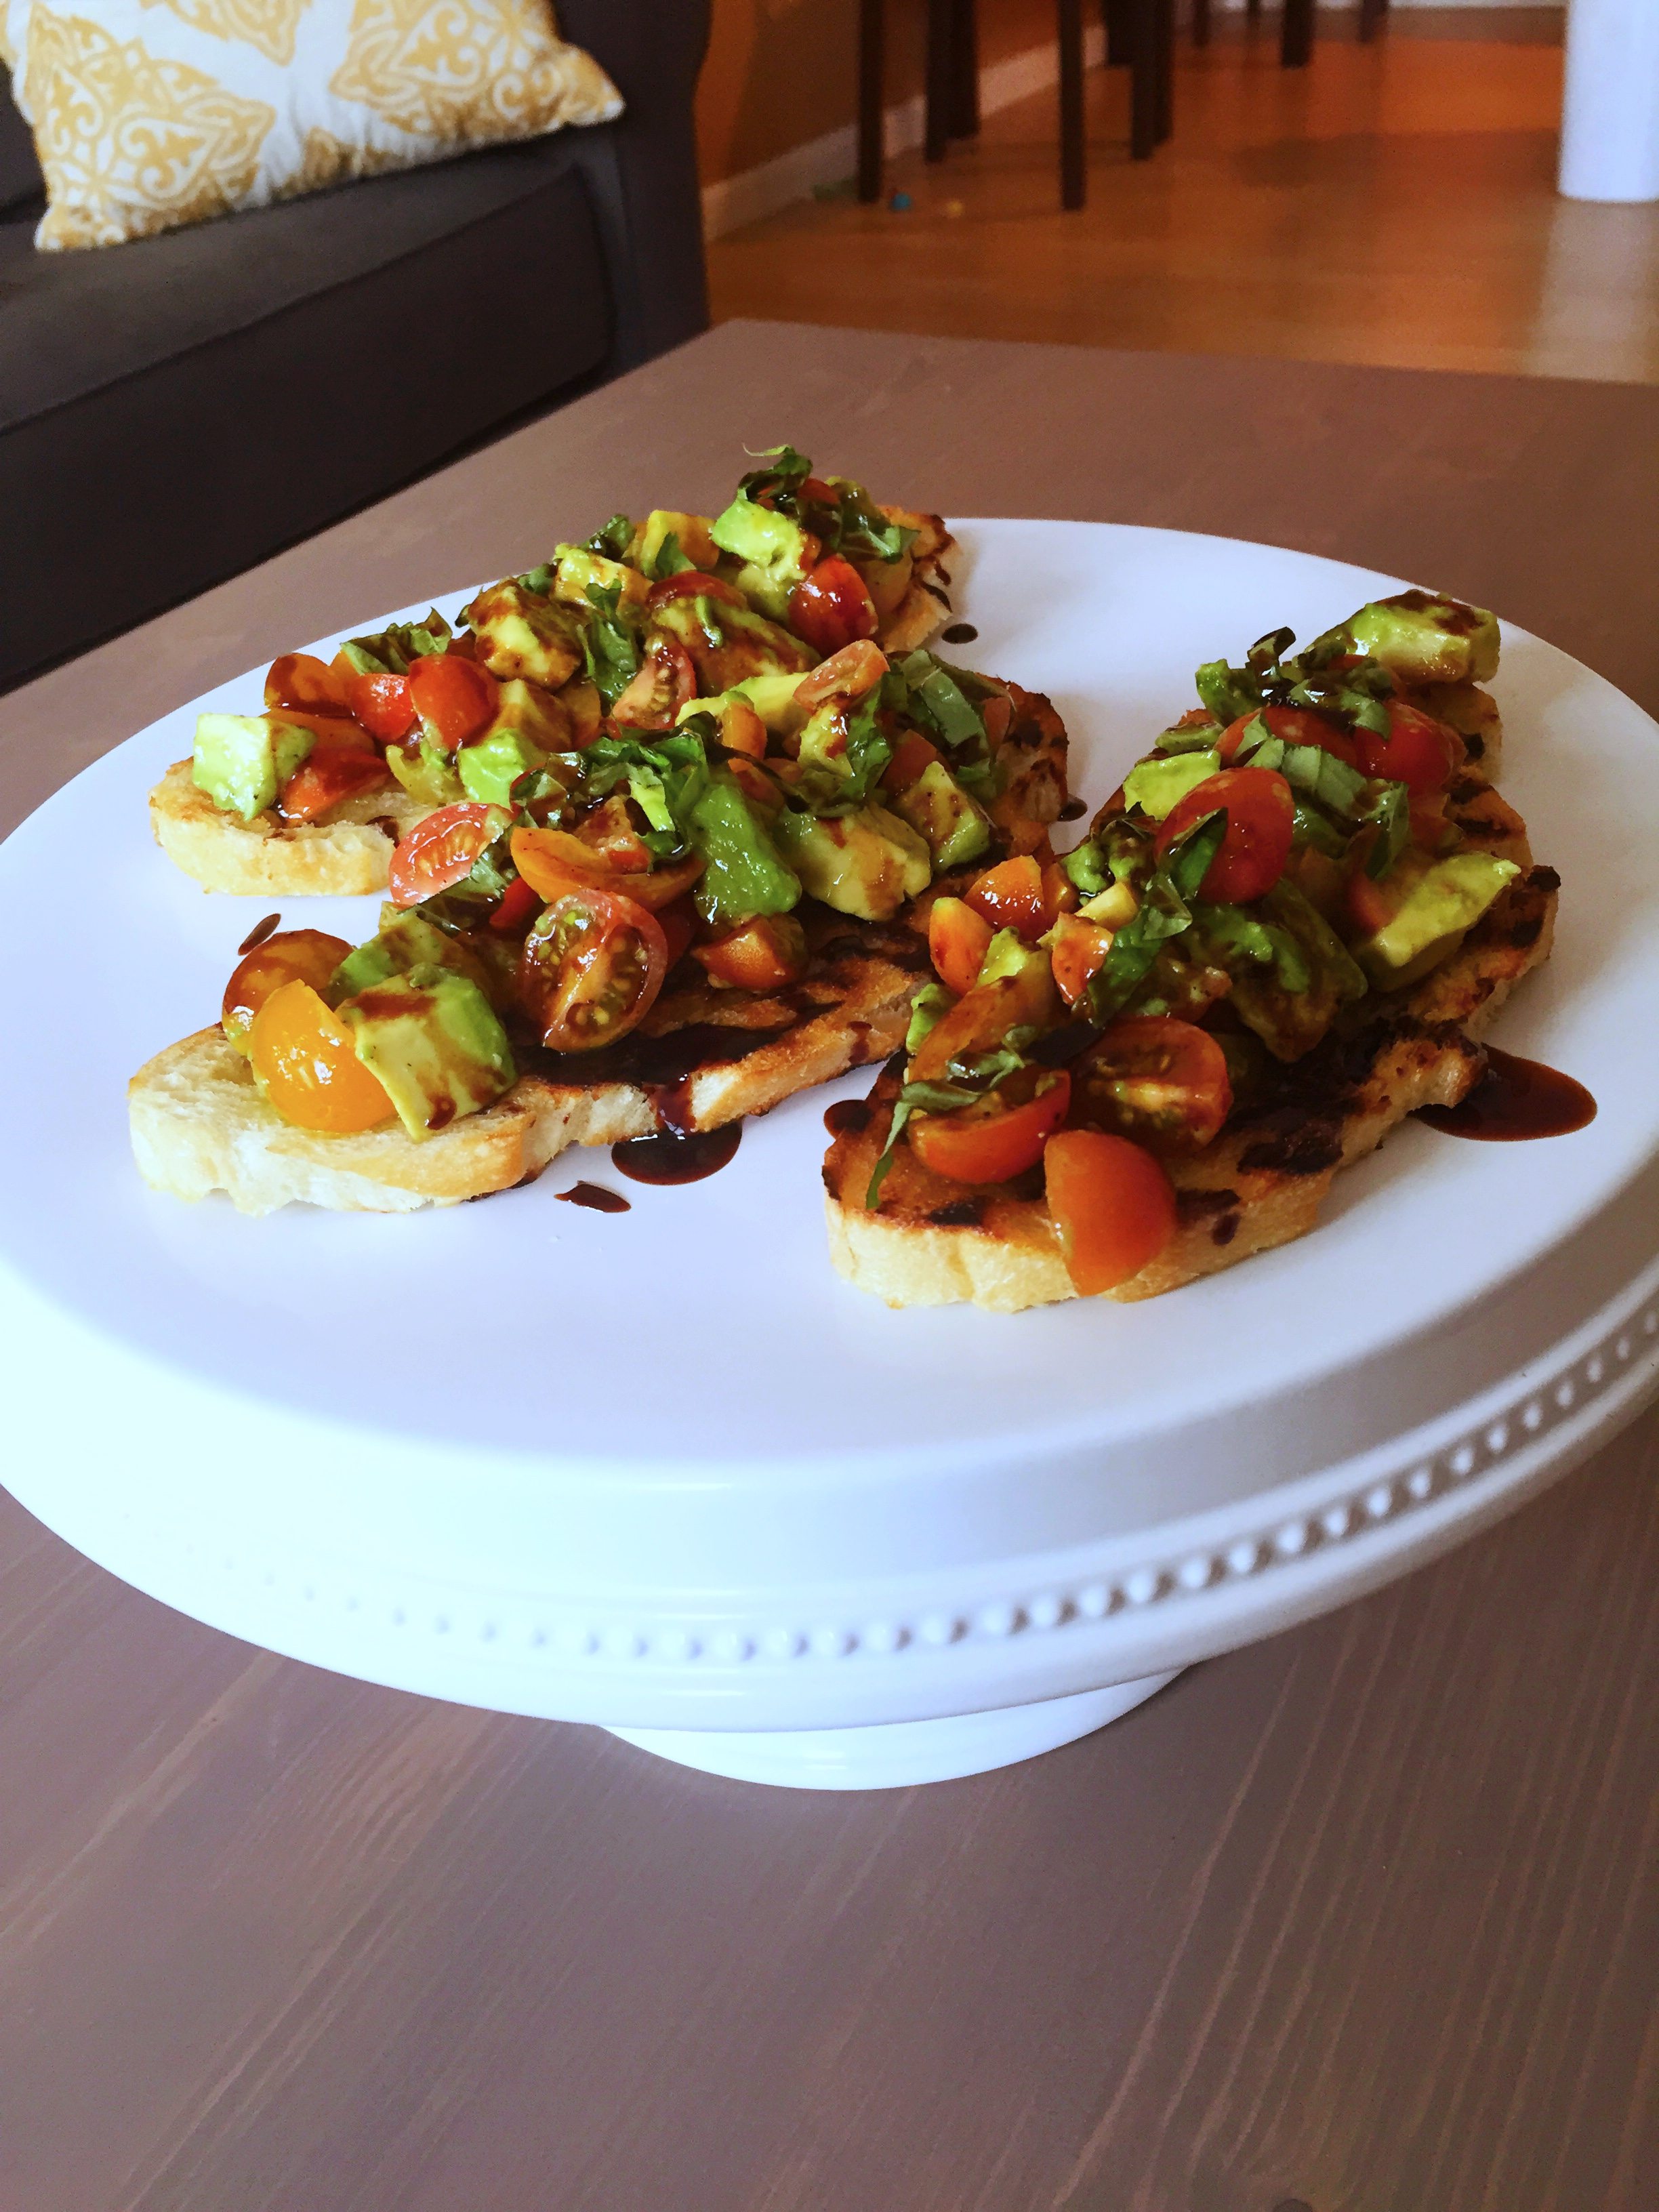 Avocado Bruschetta with Balsamic Glaze